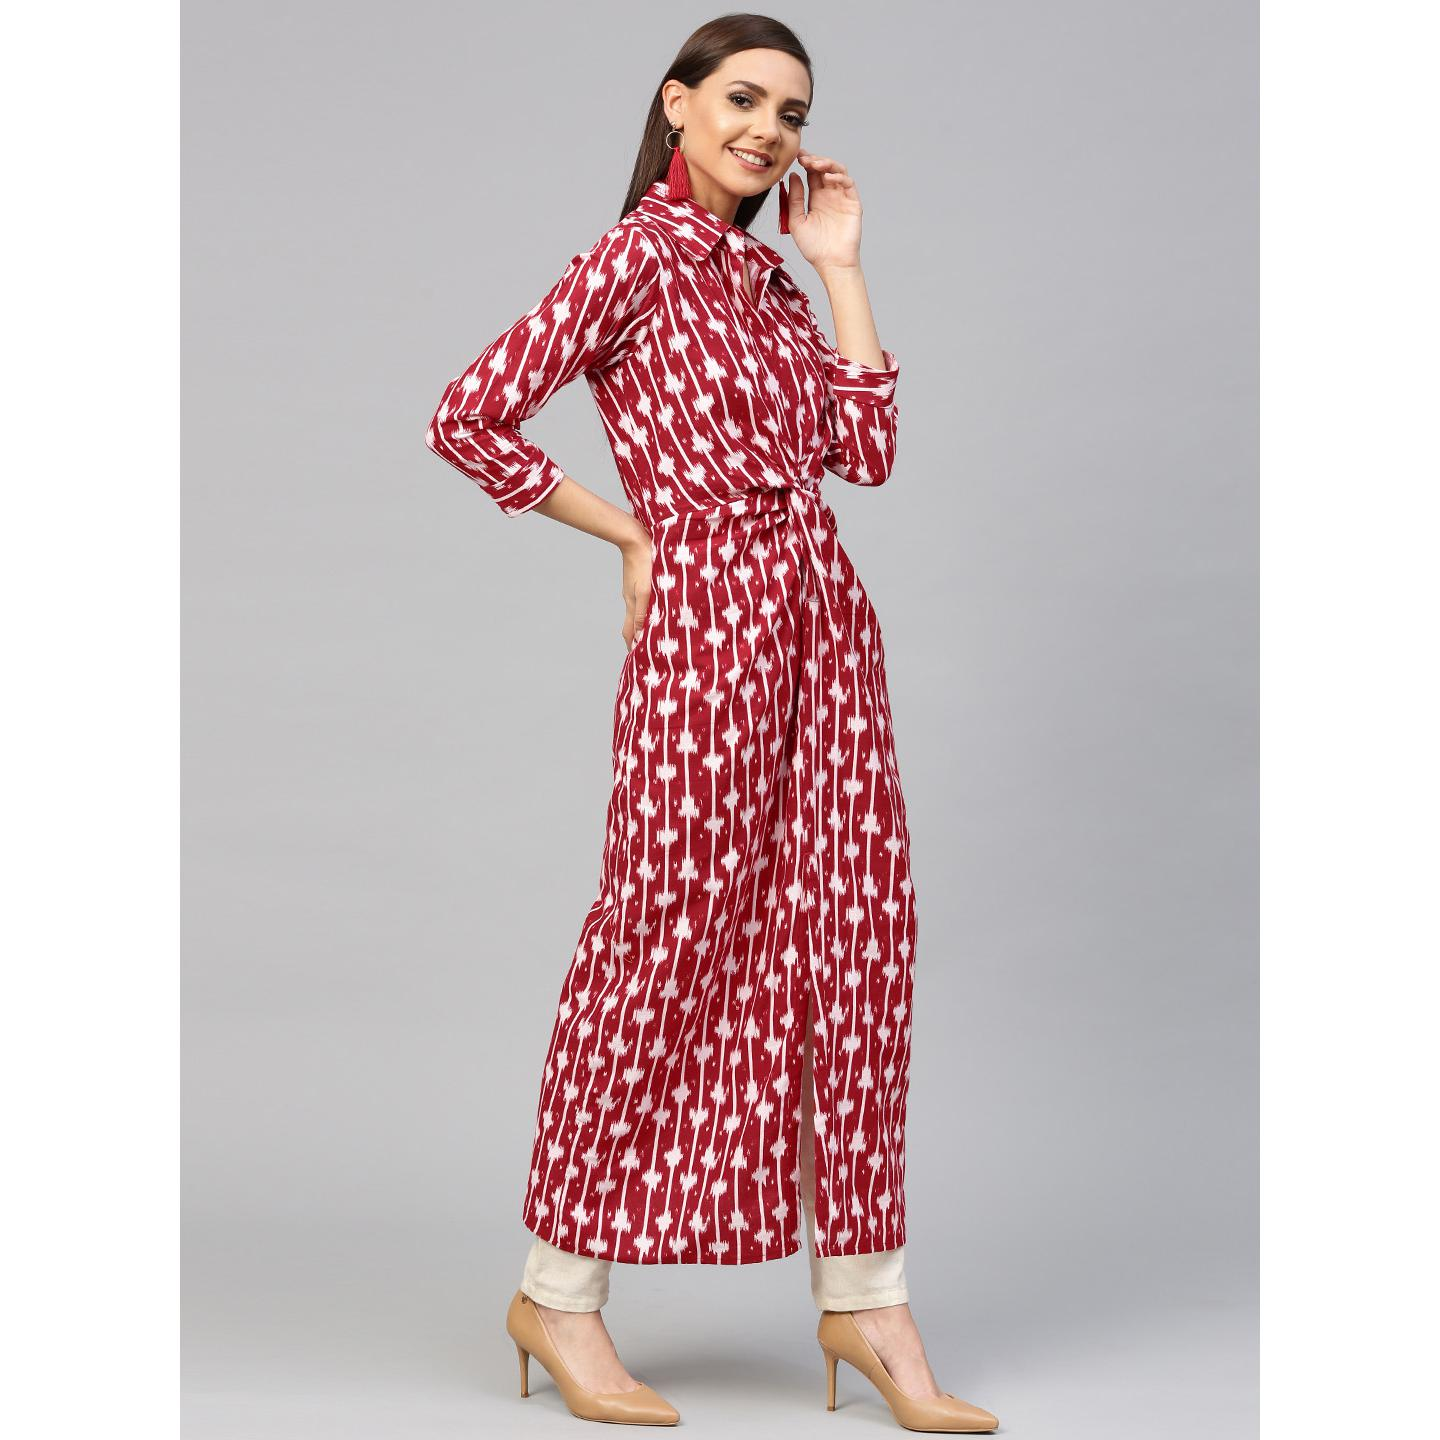 Ahalyaa - Red Colored Casual Printed Cotton Kurti